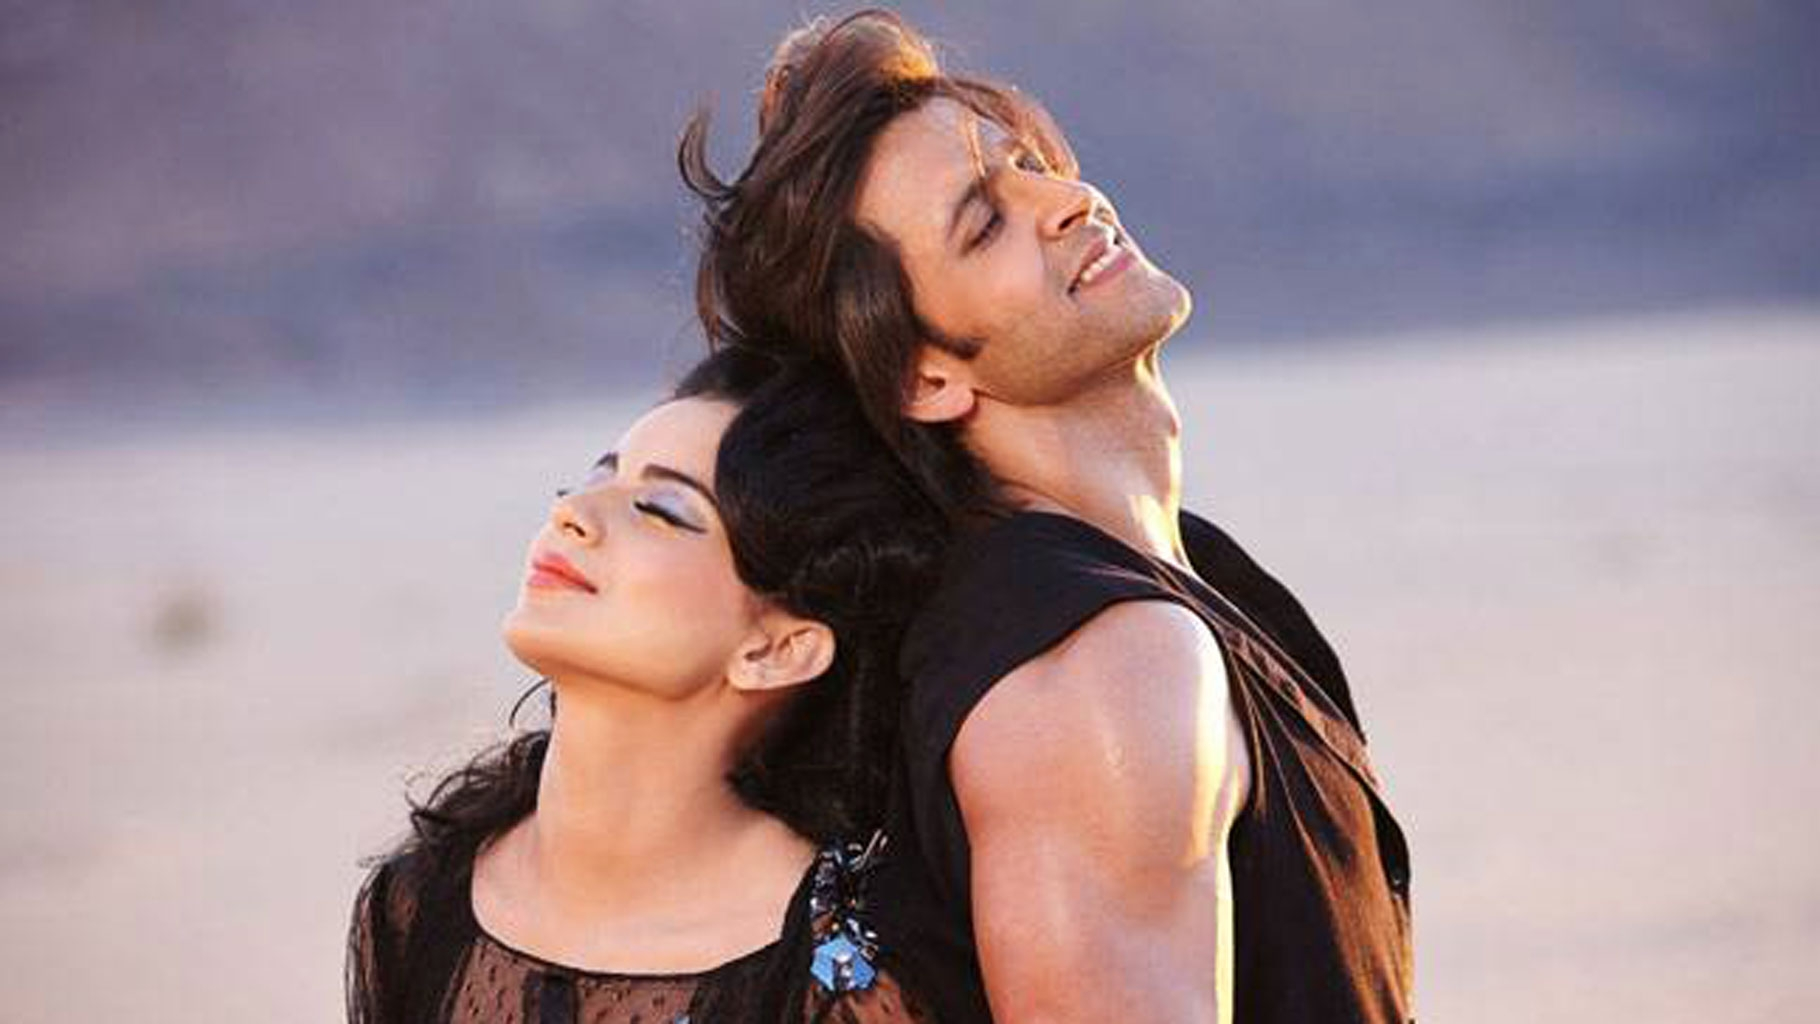 hrithik roshan and priyanka chopra in movie krrish 3 hd - HD 1820×1024